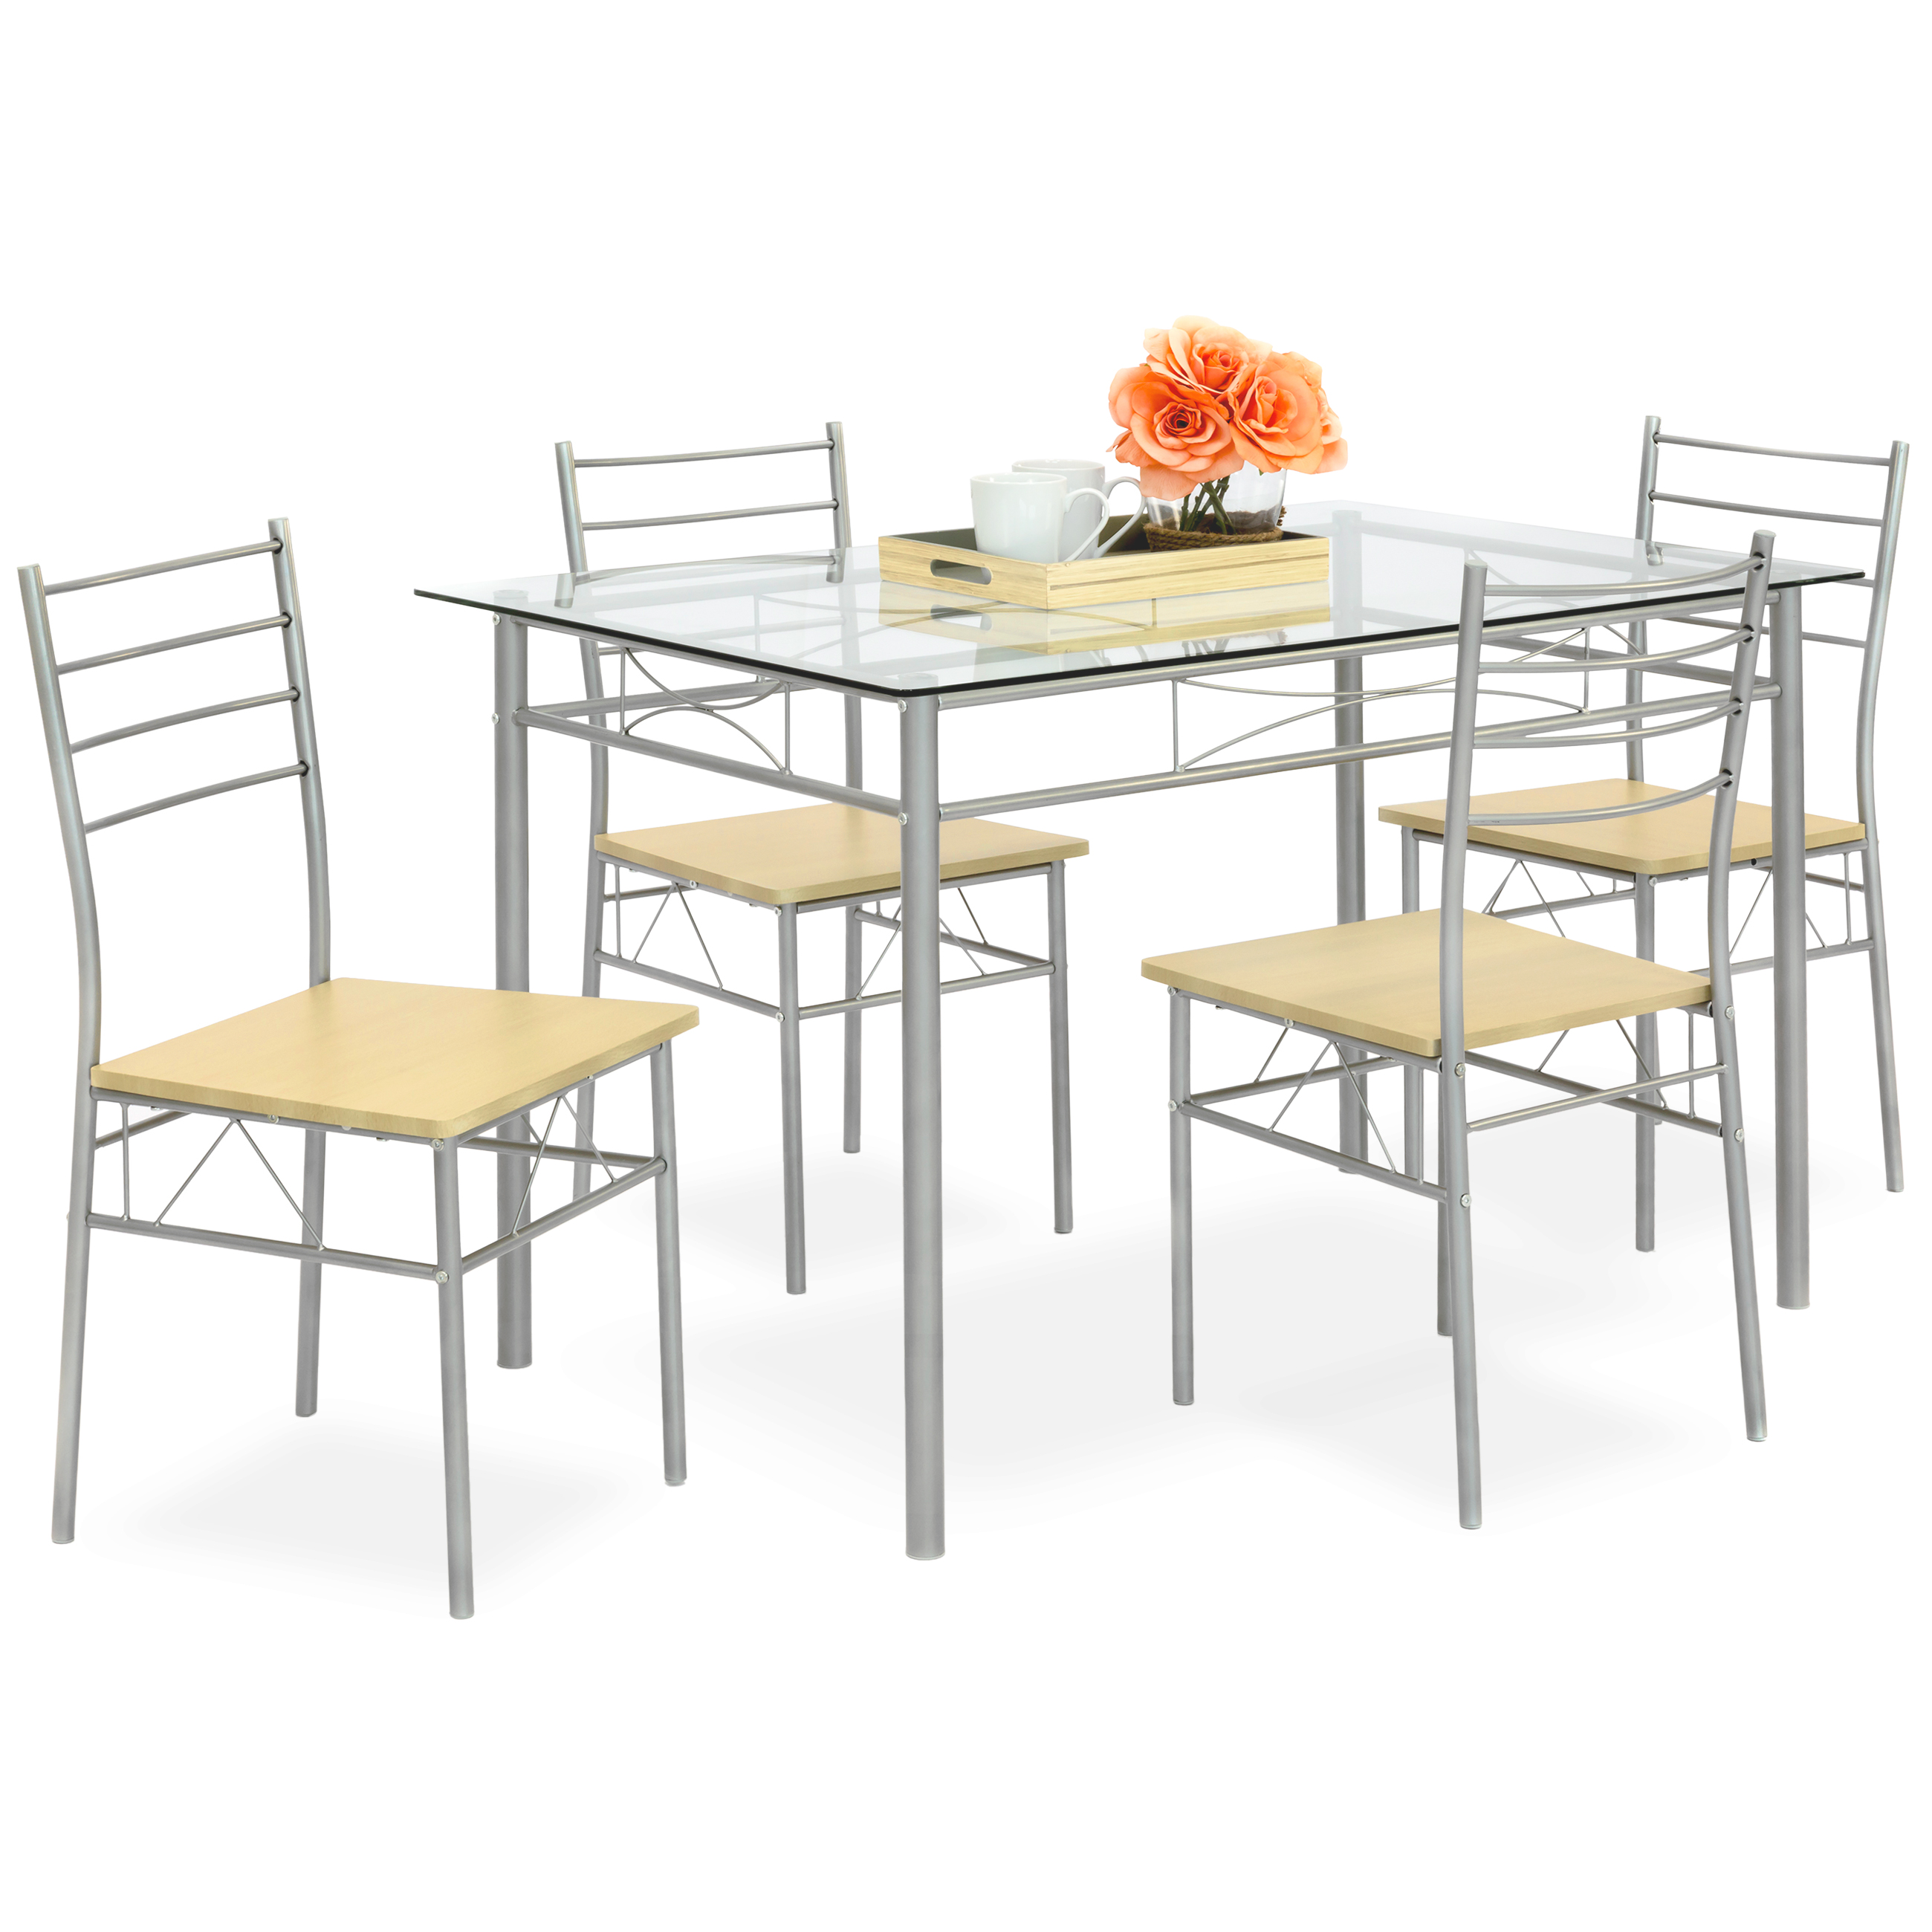 Best Choice Products Home 5-Piece Dining Table Set w/ Glass Table Top, 4 Chairs (Silver)